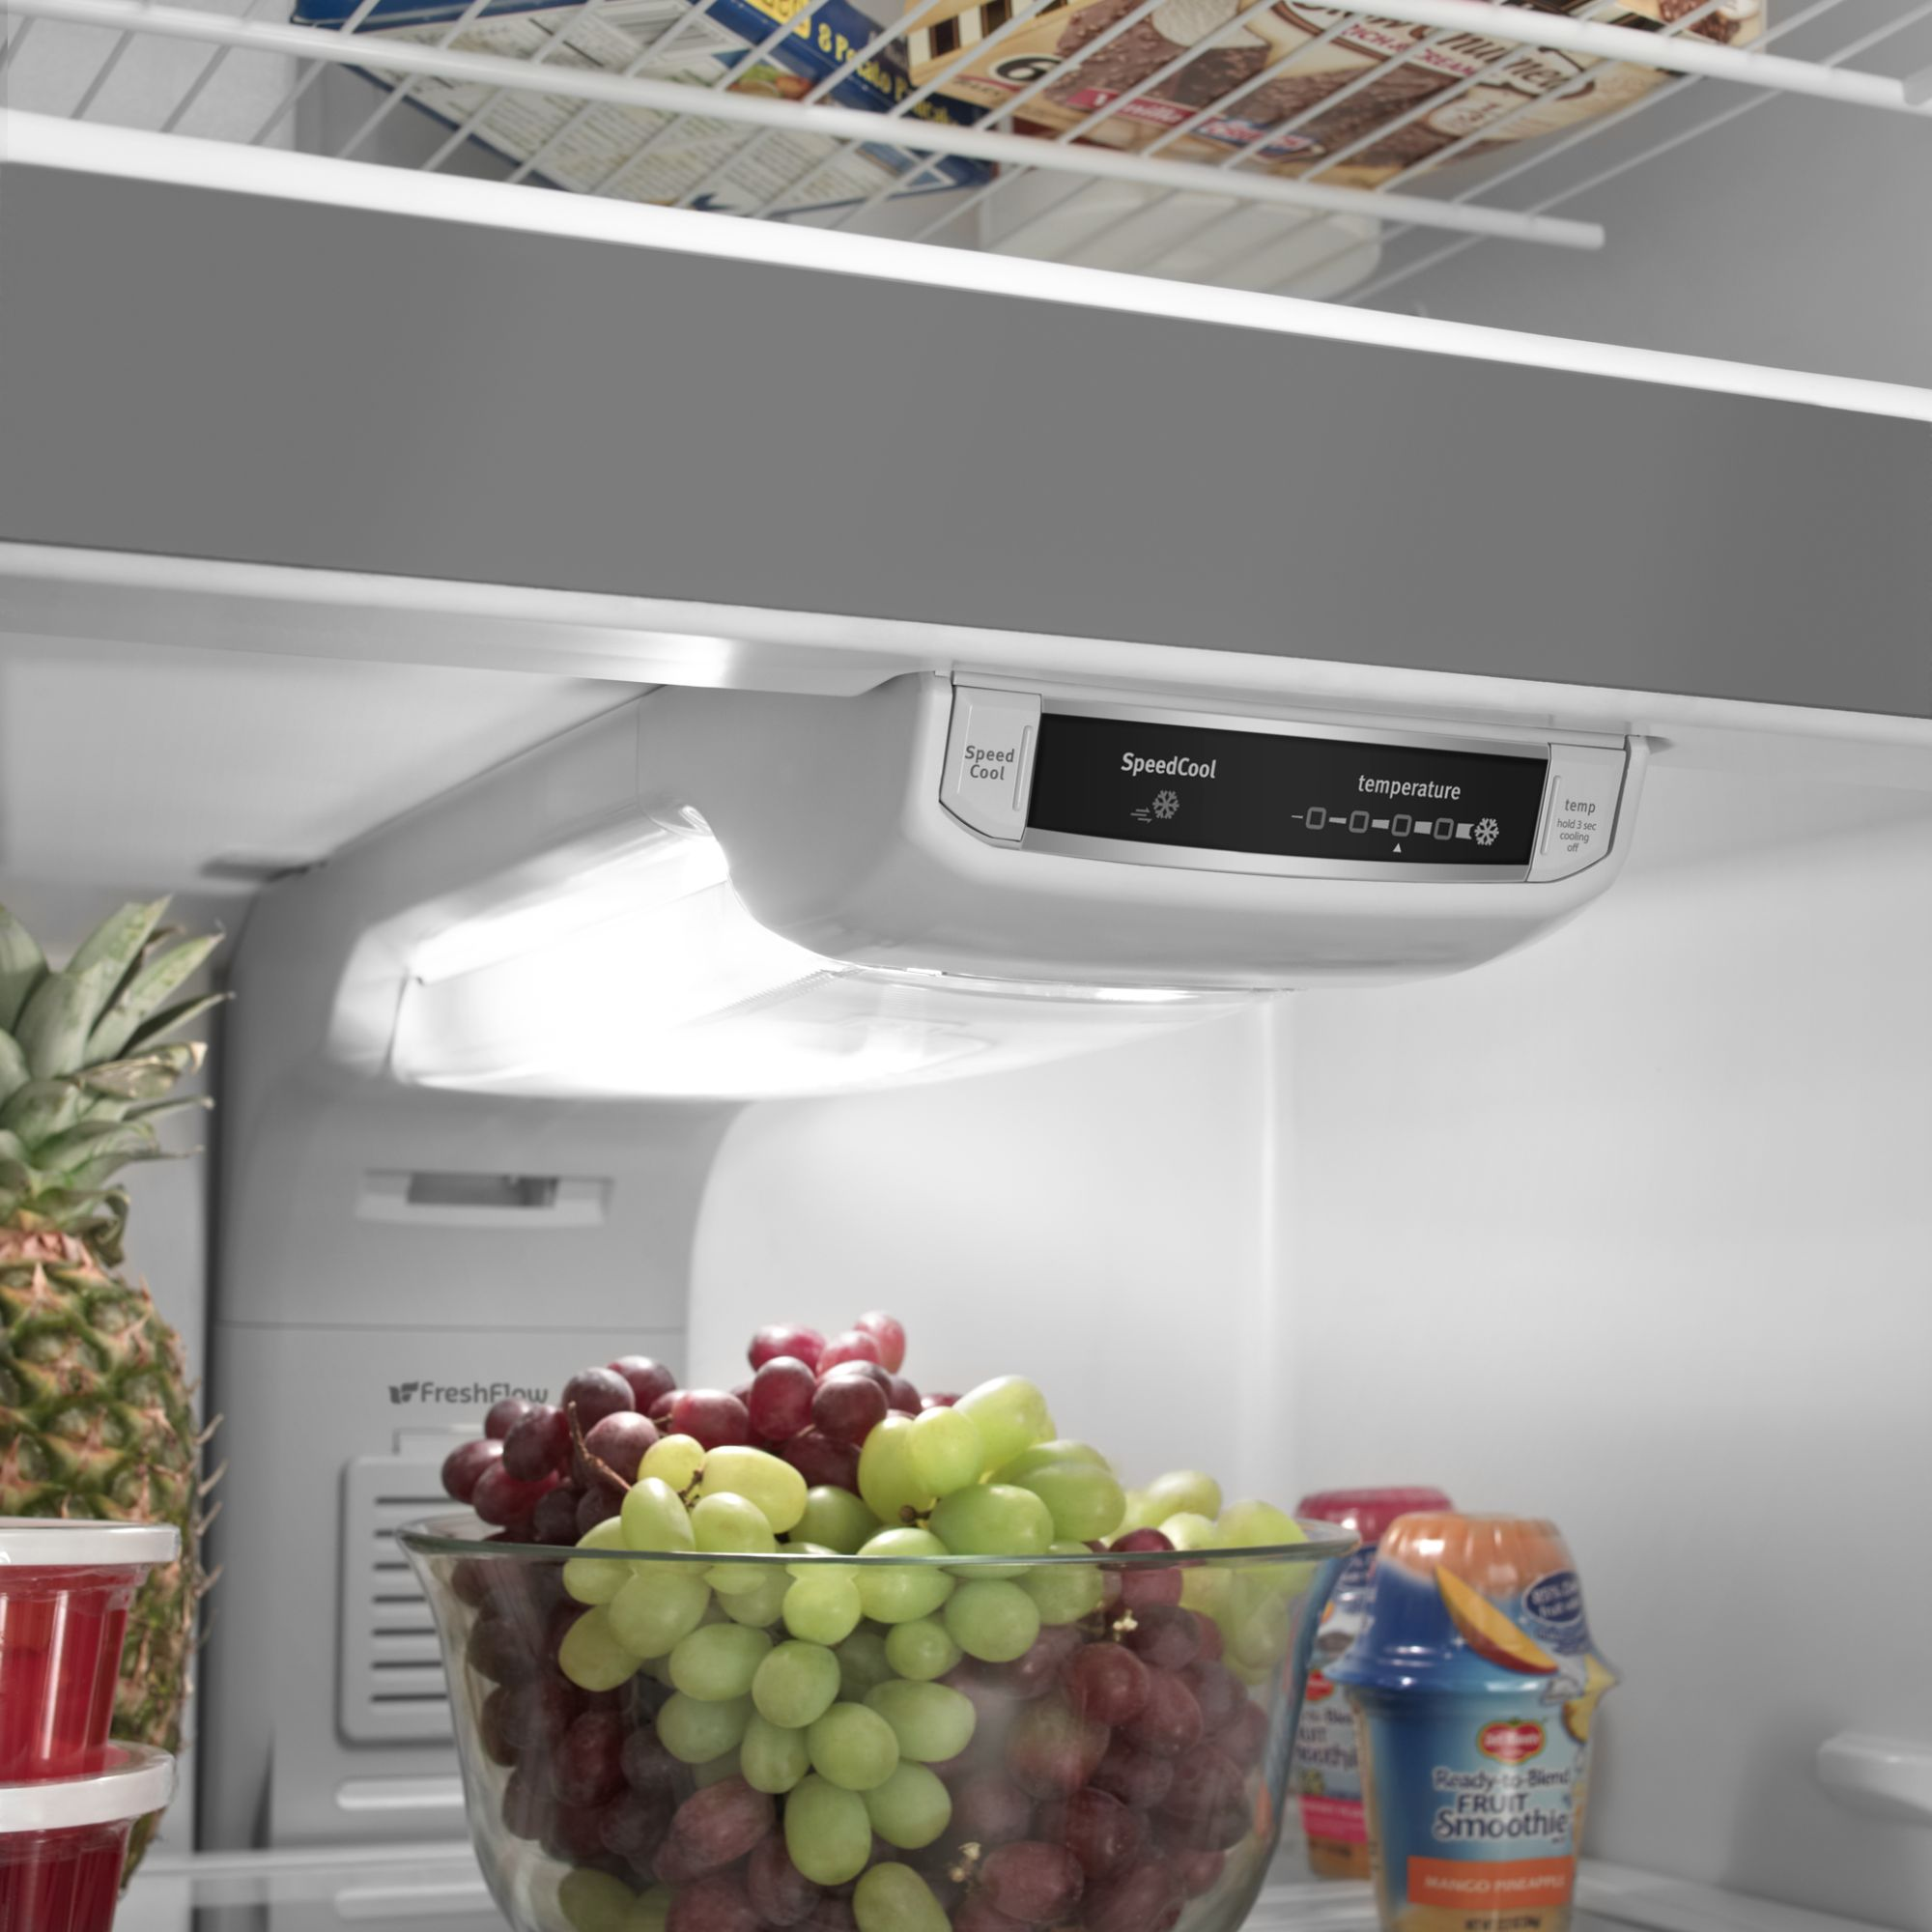 Maytag 21.1 cu. ft. Top-Freezer Refrigerator w/ Strongbox™ Door Bins - Stainless Steel